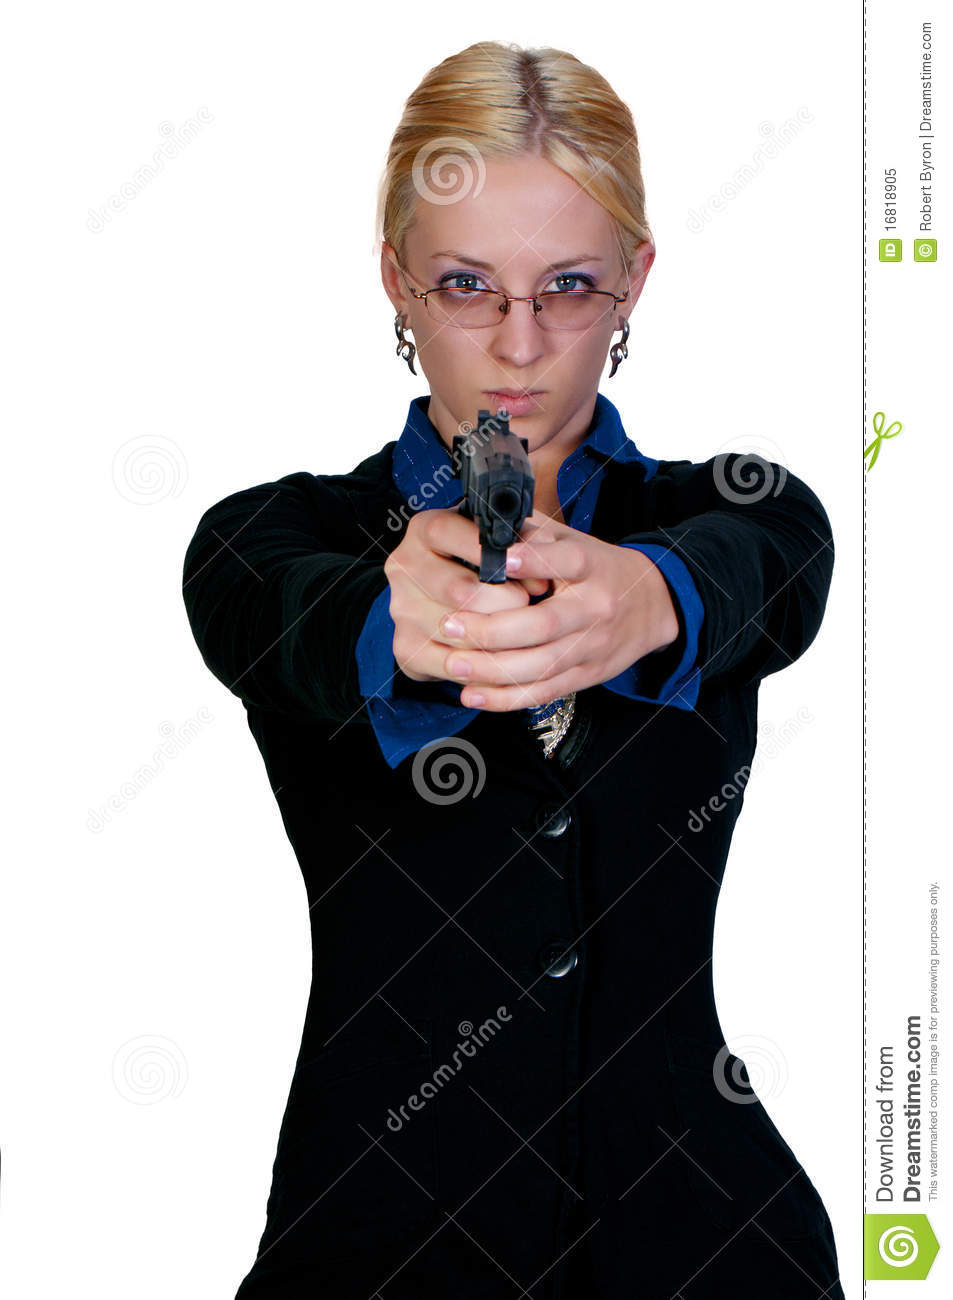 Federal Armed Security